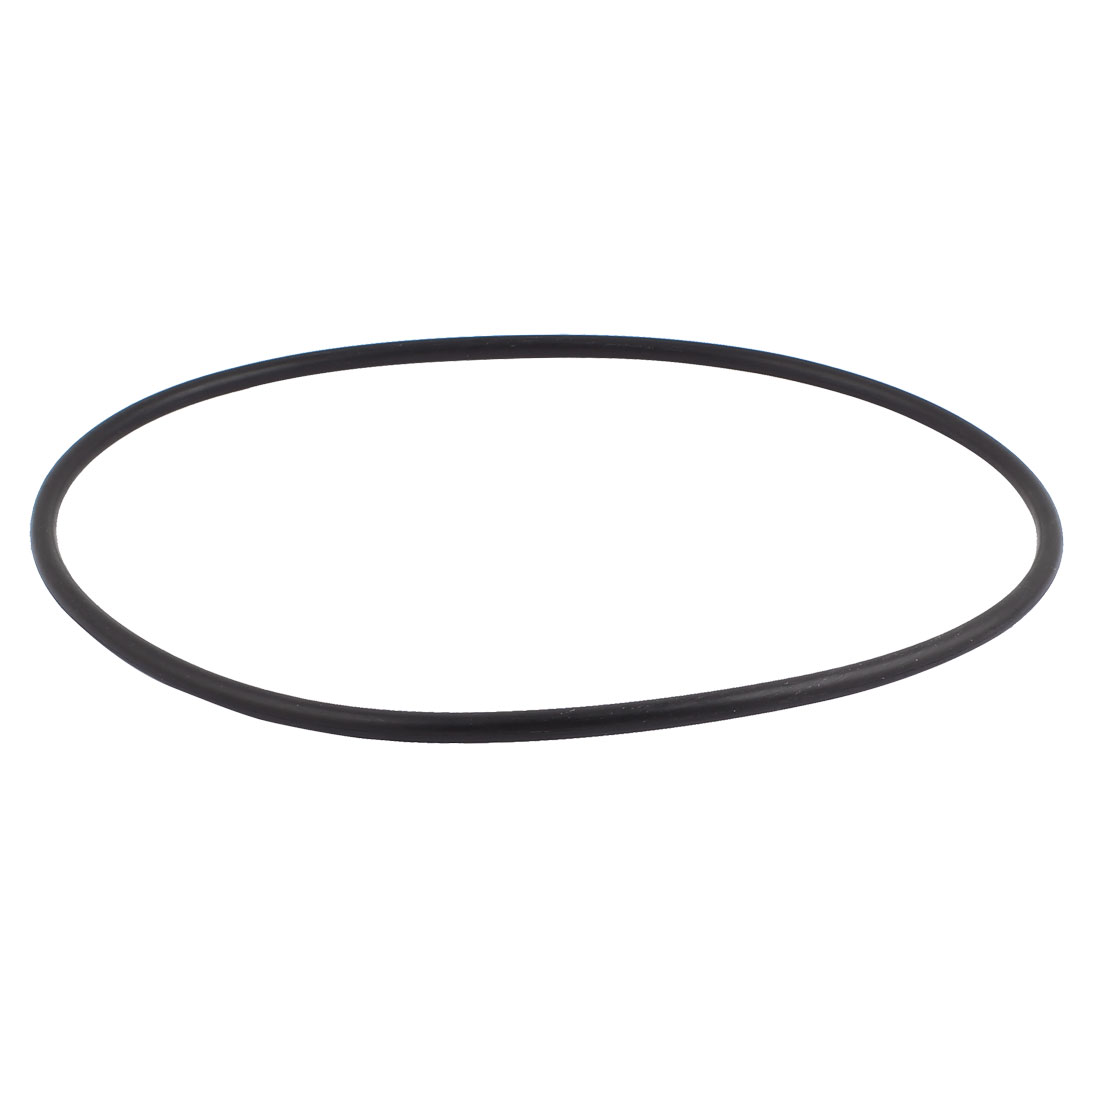 Black Universal O-Ring 295mm x 8.6mm BUNA-N Material Oil Seal Washers Grommets